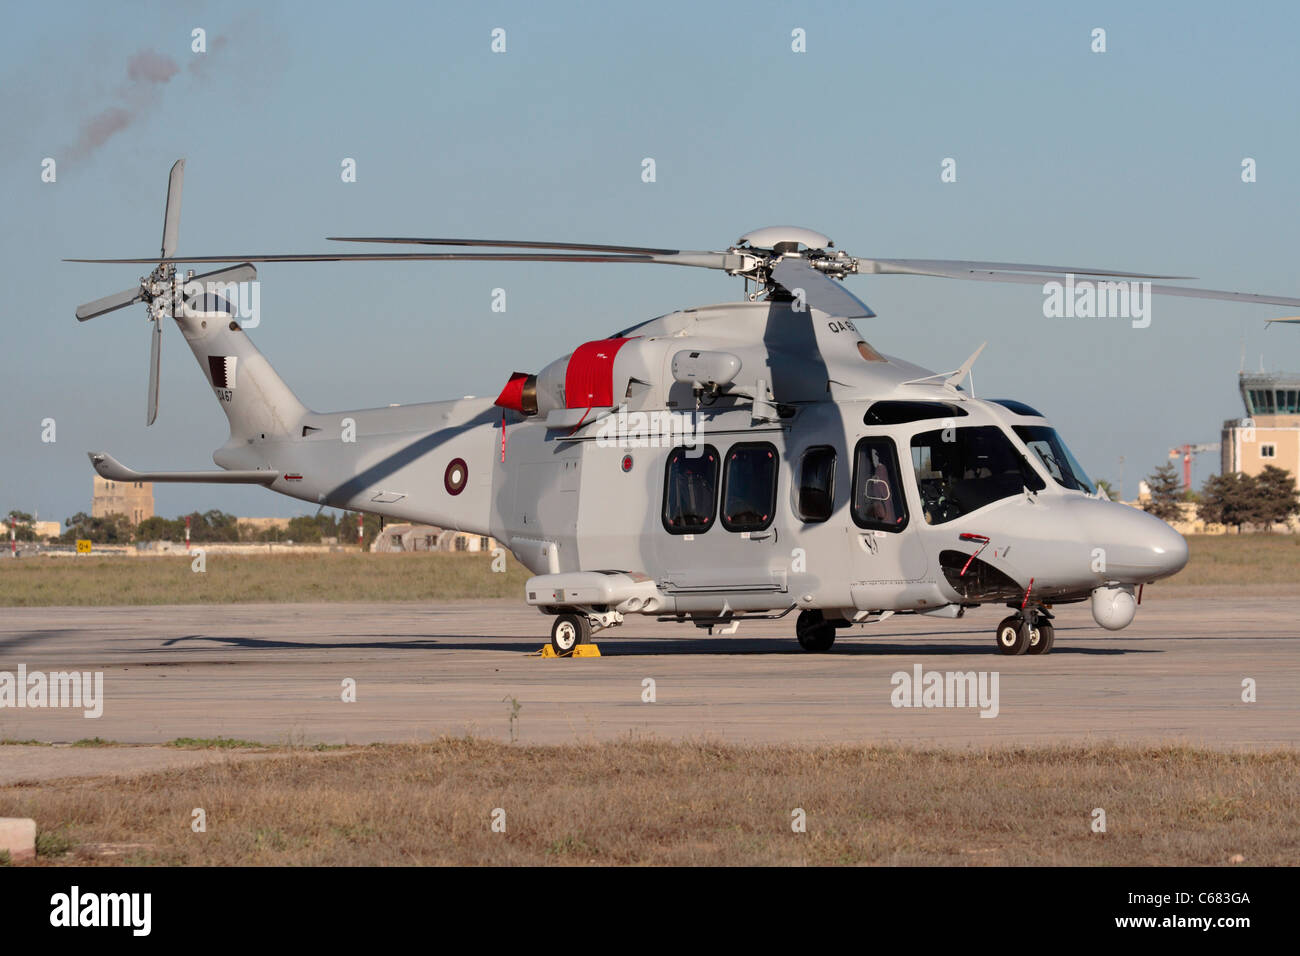 AgustaWestland AW139 military helicopter of the Qatar Emiri Air Force - Stock Image